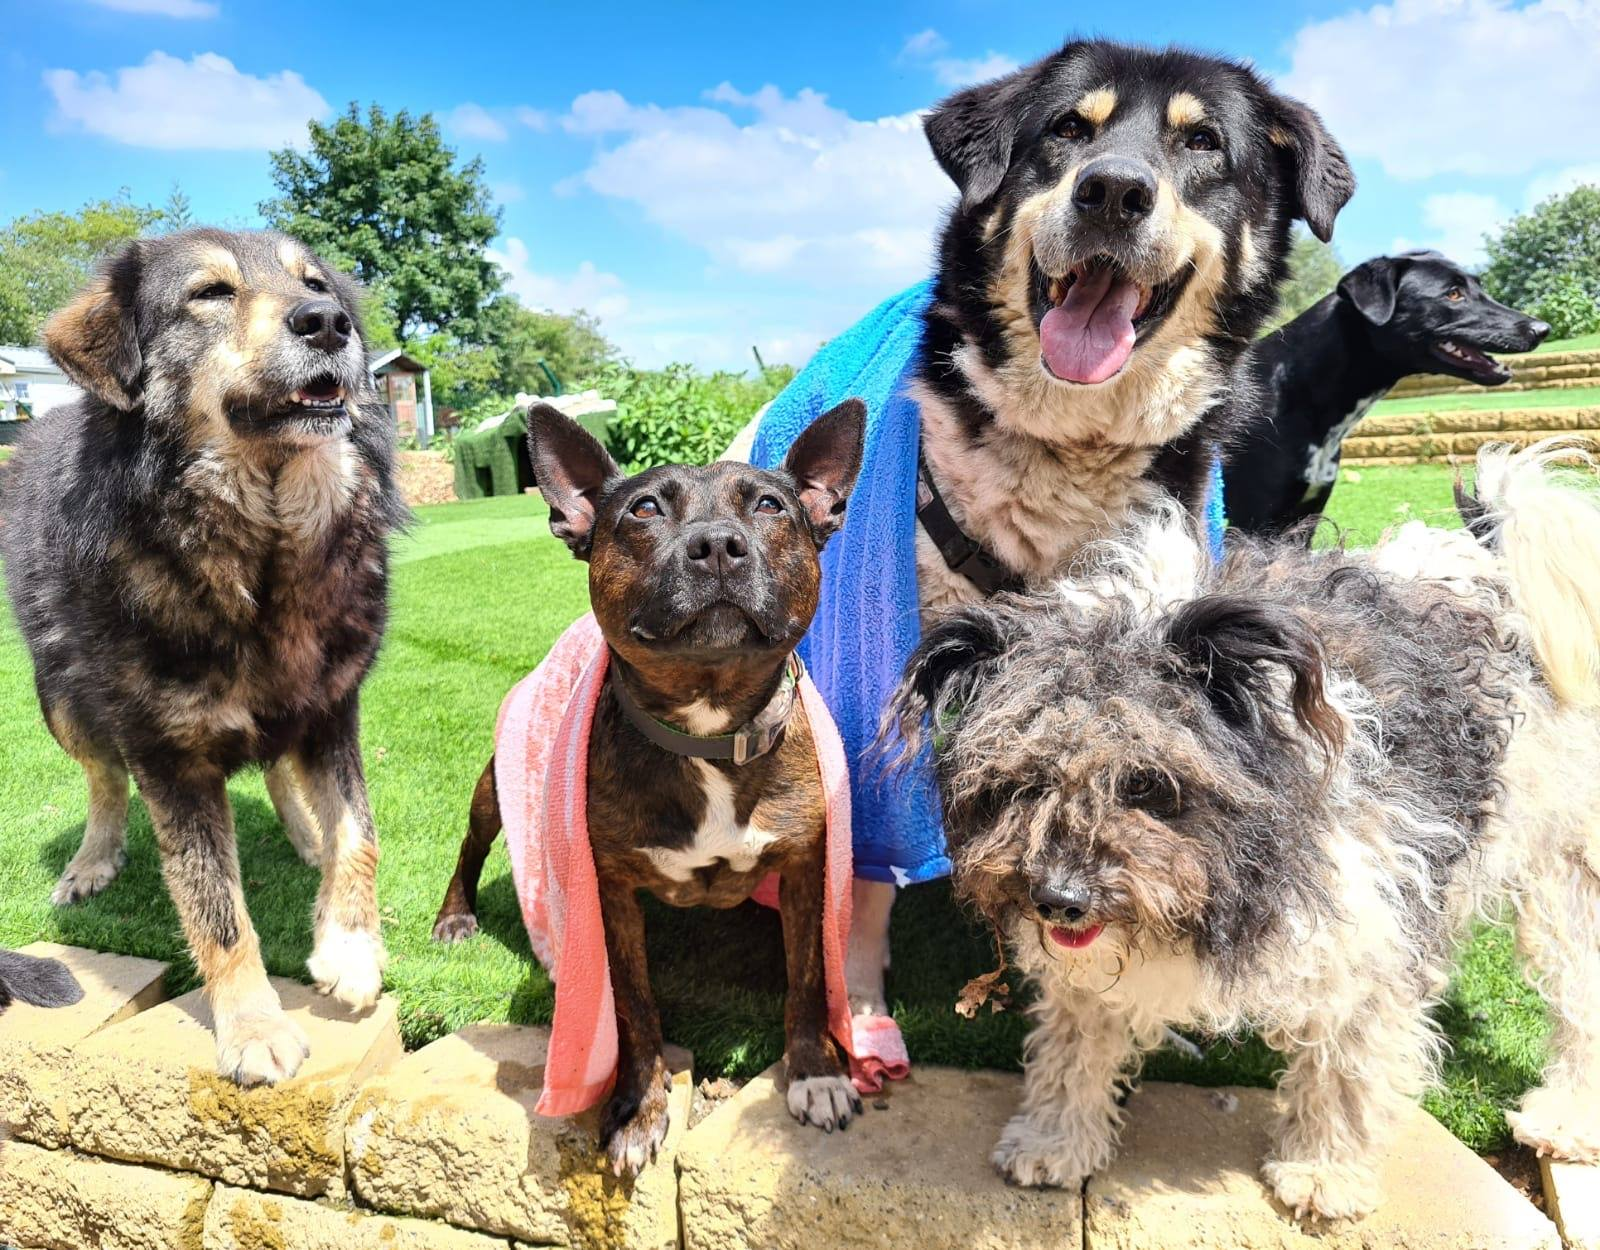 Dogs 4 Rescue secures 46-acre farm to build a rehab sanctuary for the dogs 'no one wants', The Manc